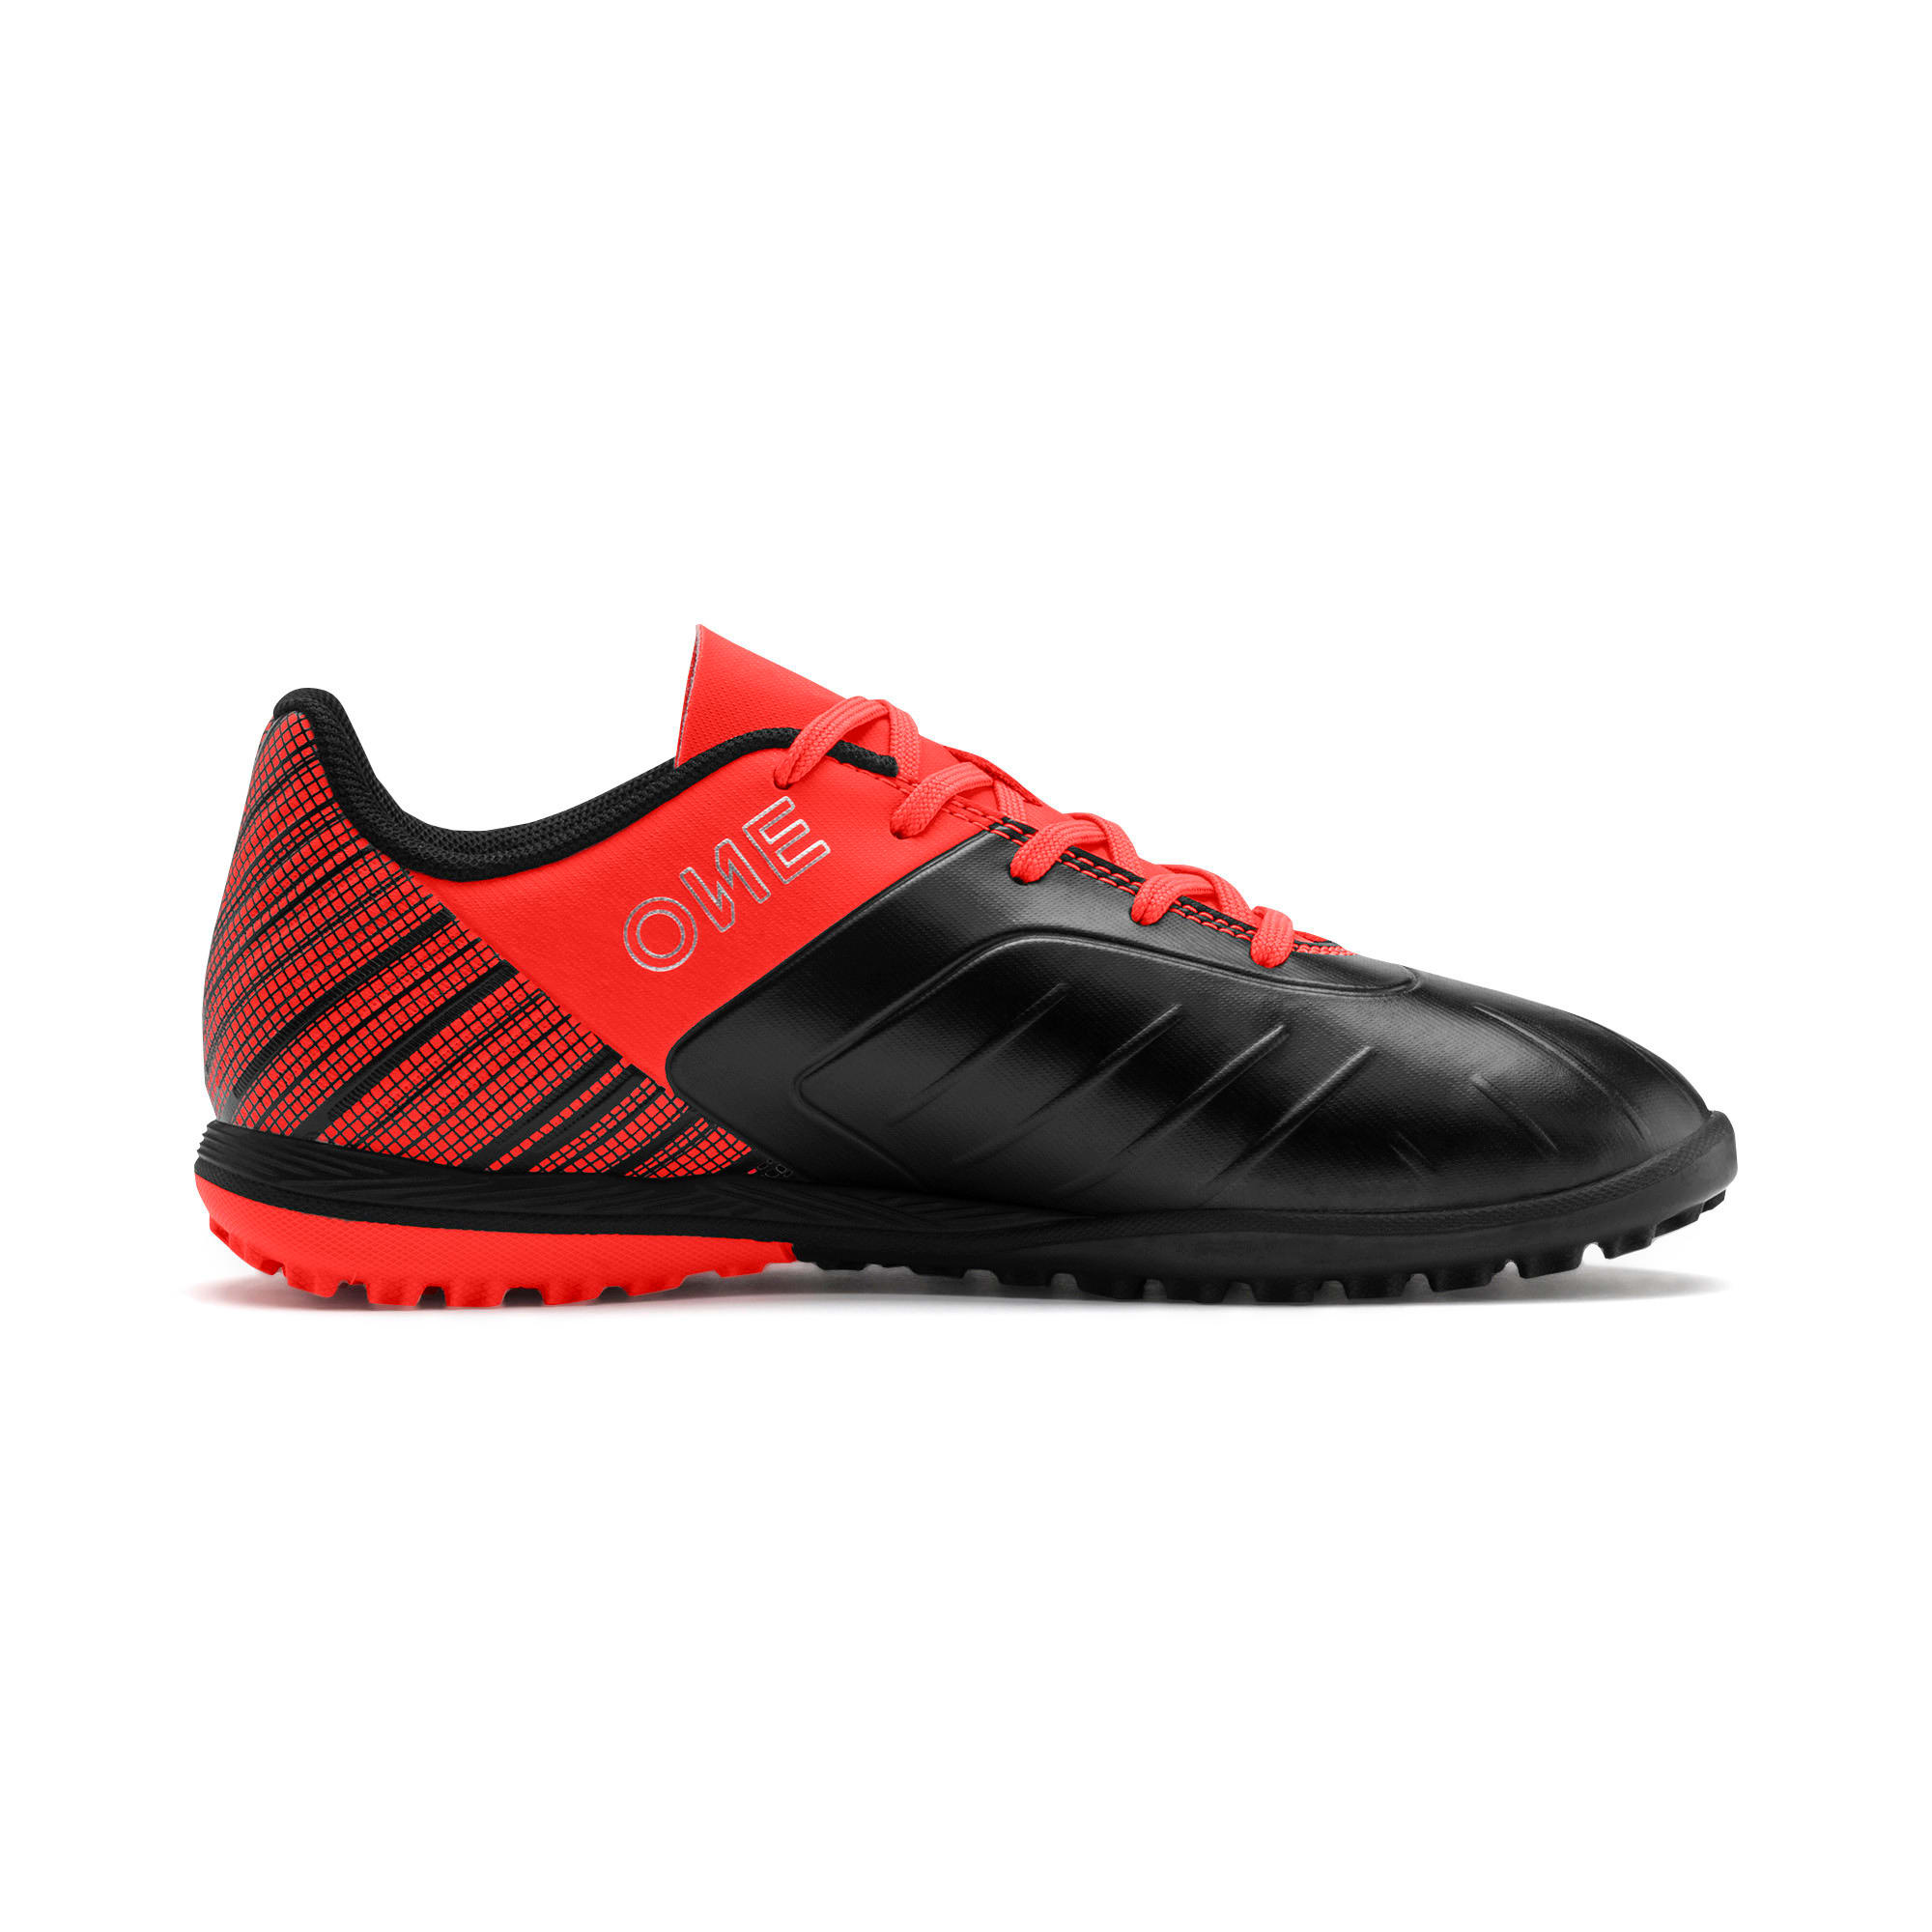 Thumbnail 5 of PUMA ONE 5.4 TT Youth Football Boots, Black-Nrgy Red-Aged Silver, medium